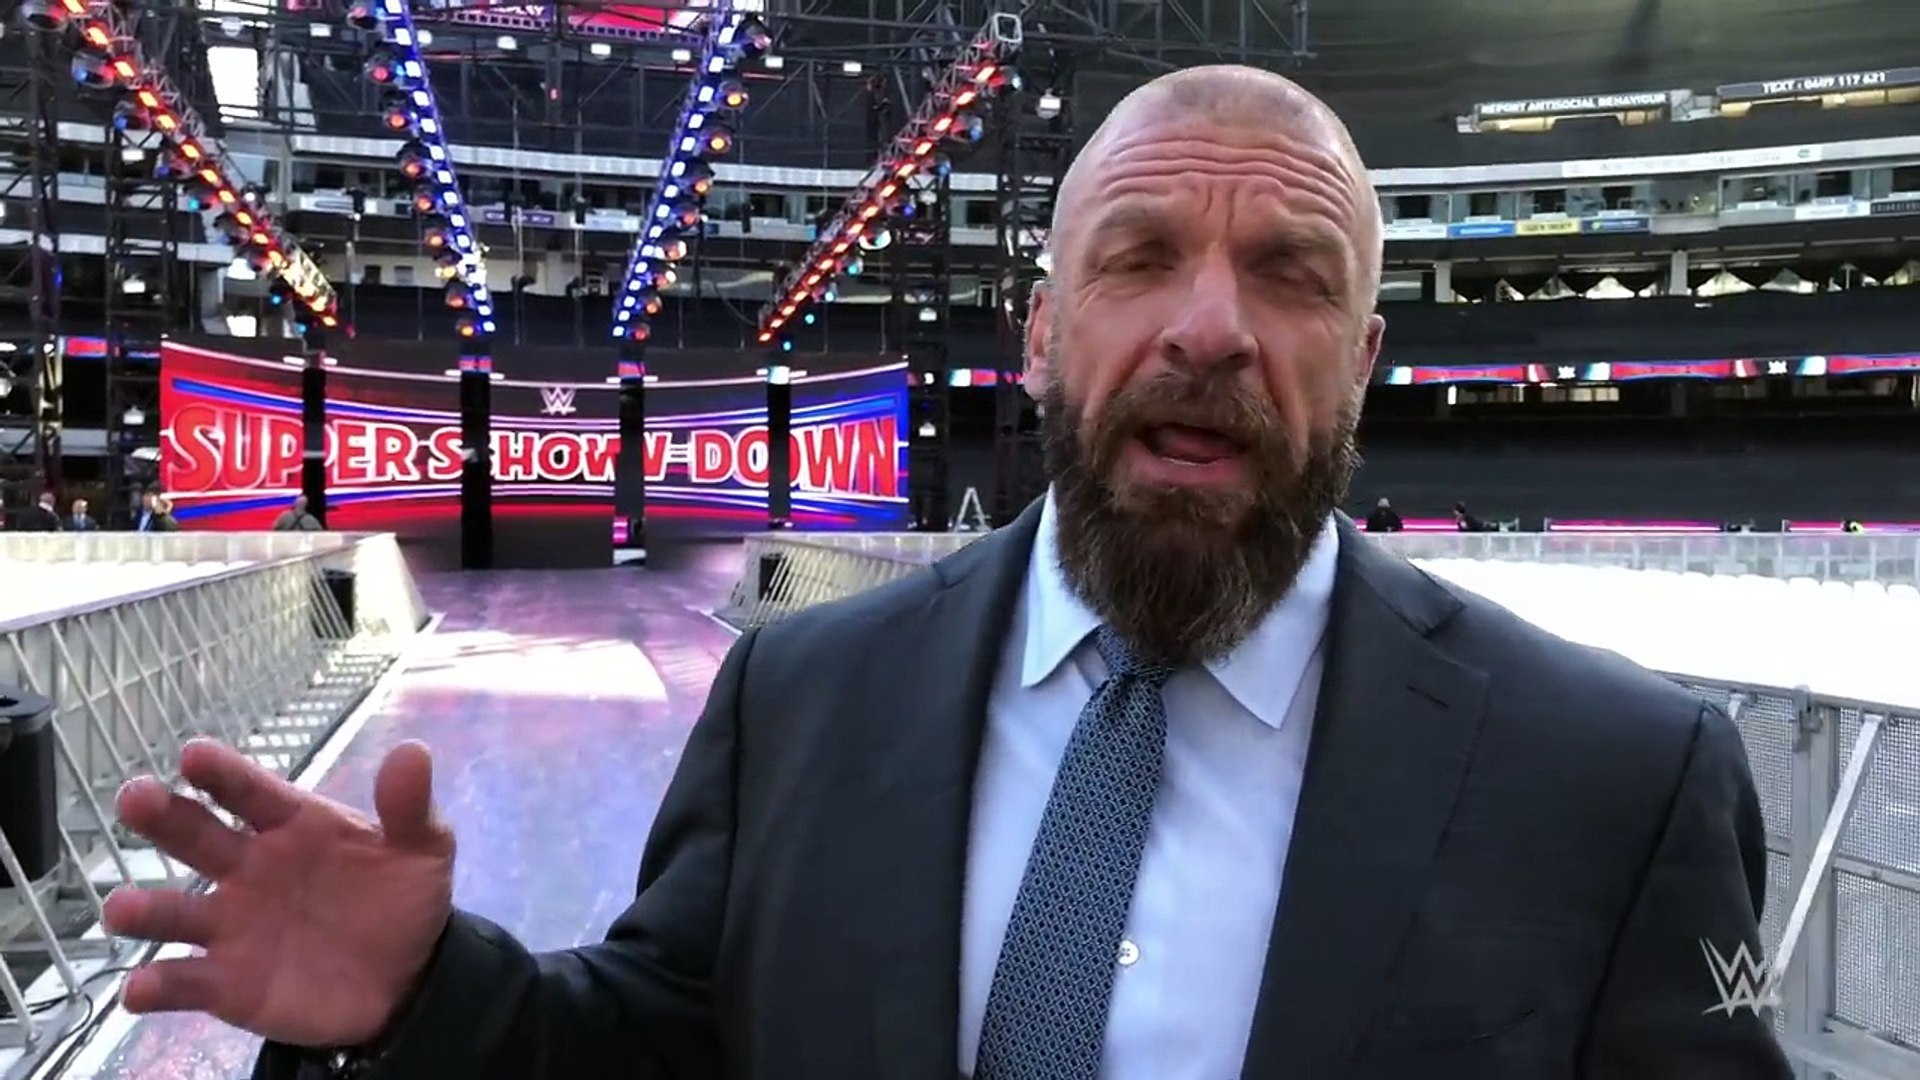 Triple H_ The MCG will be electric at WWE Super Show-Down